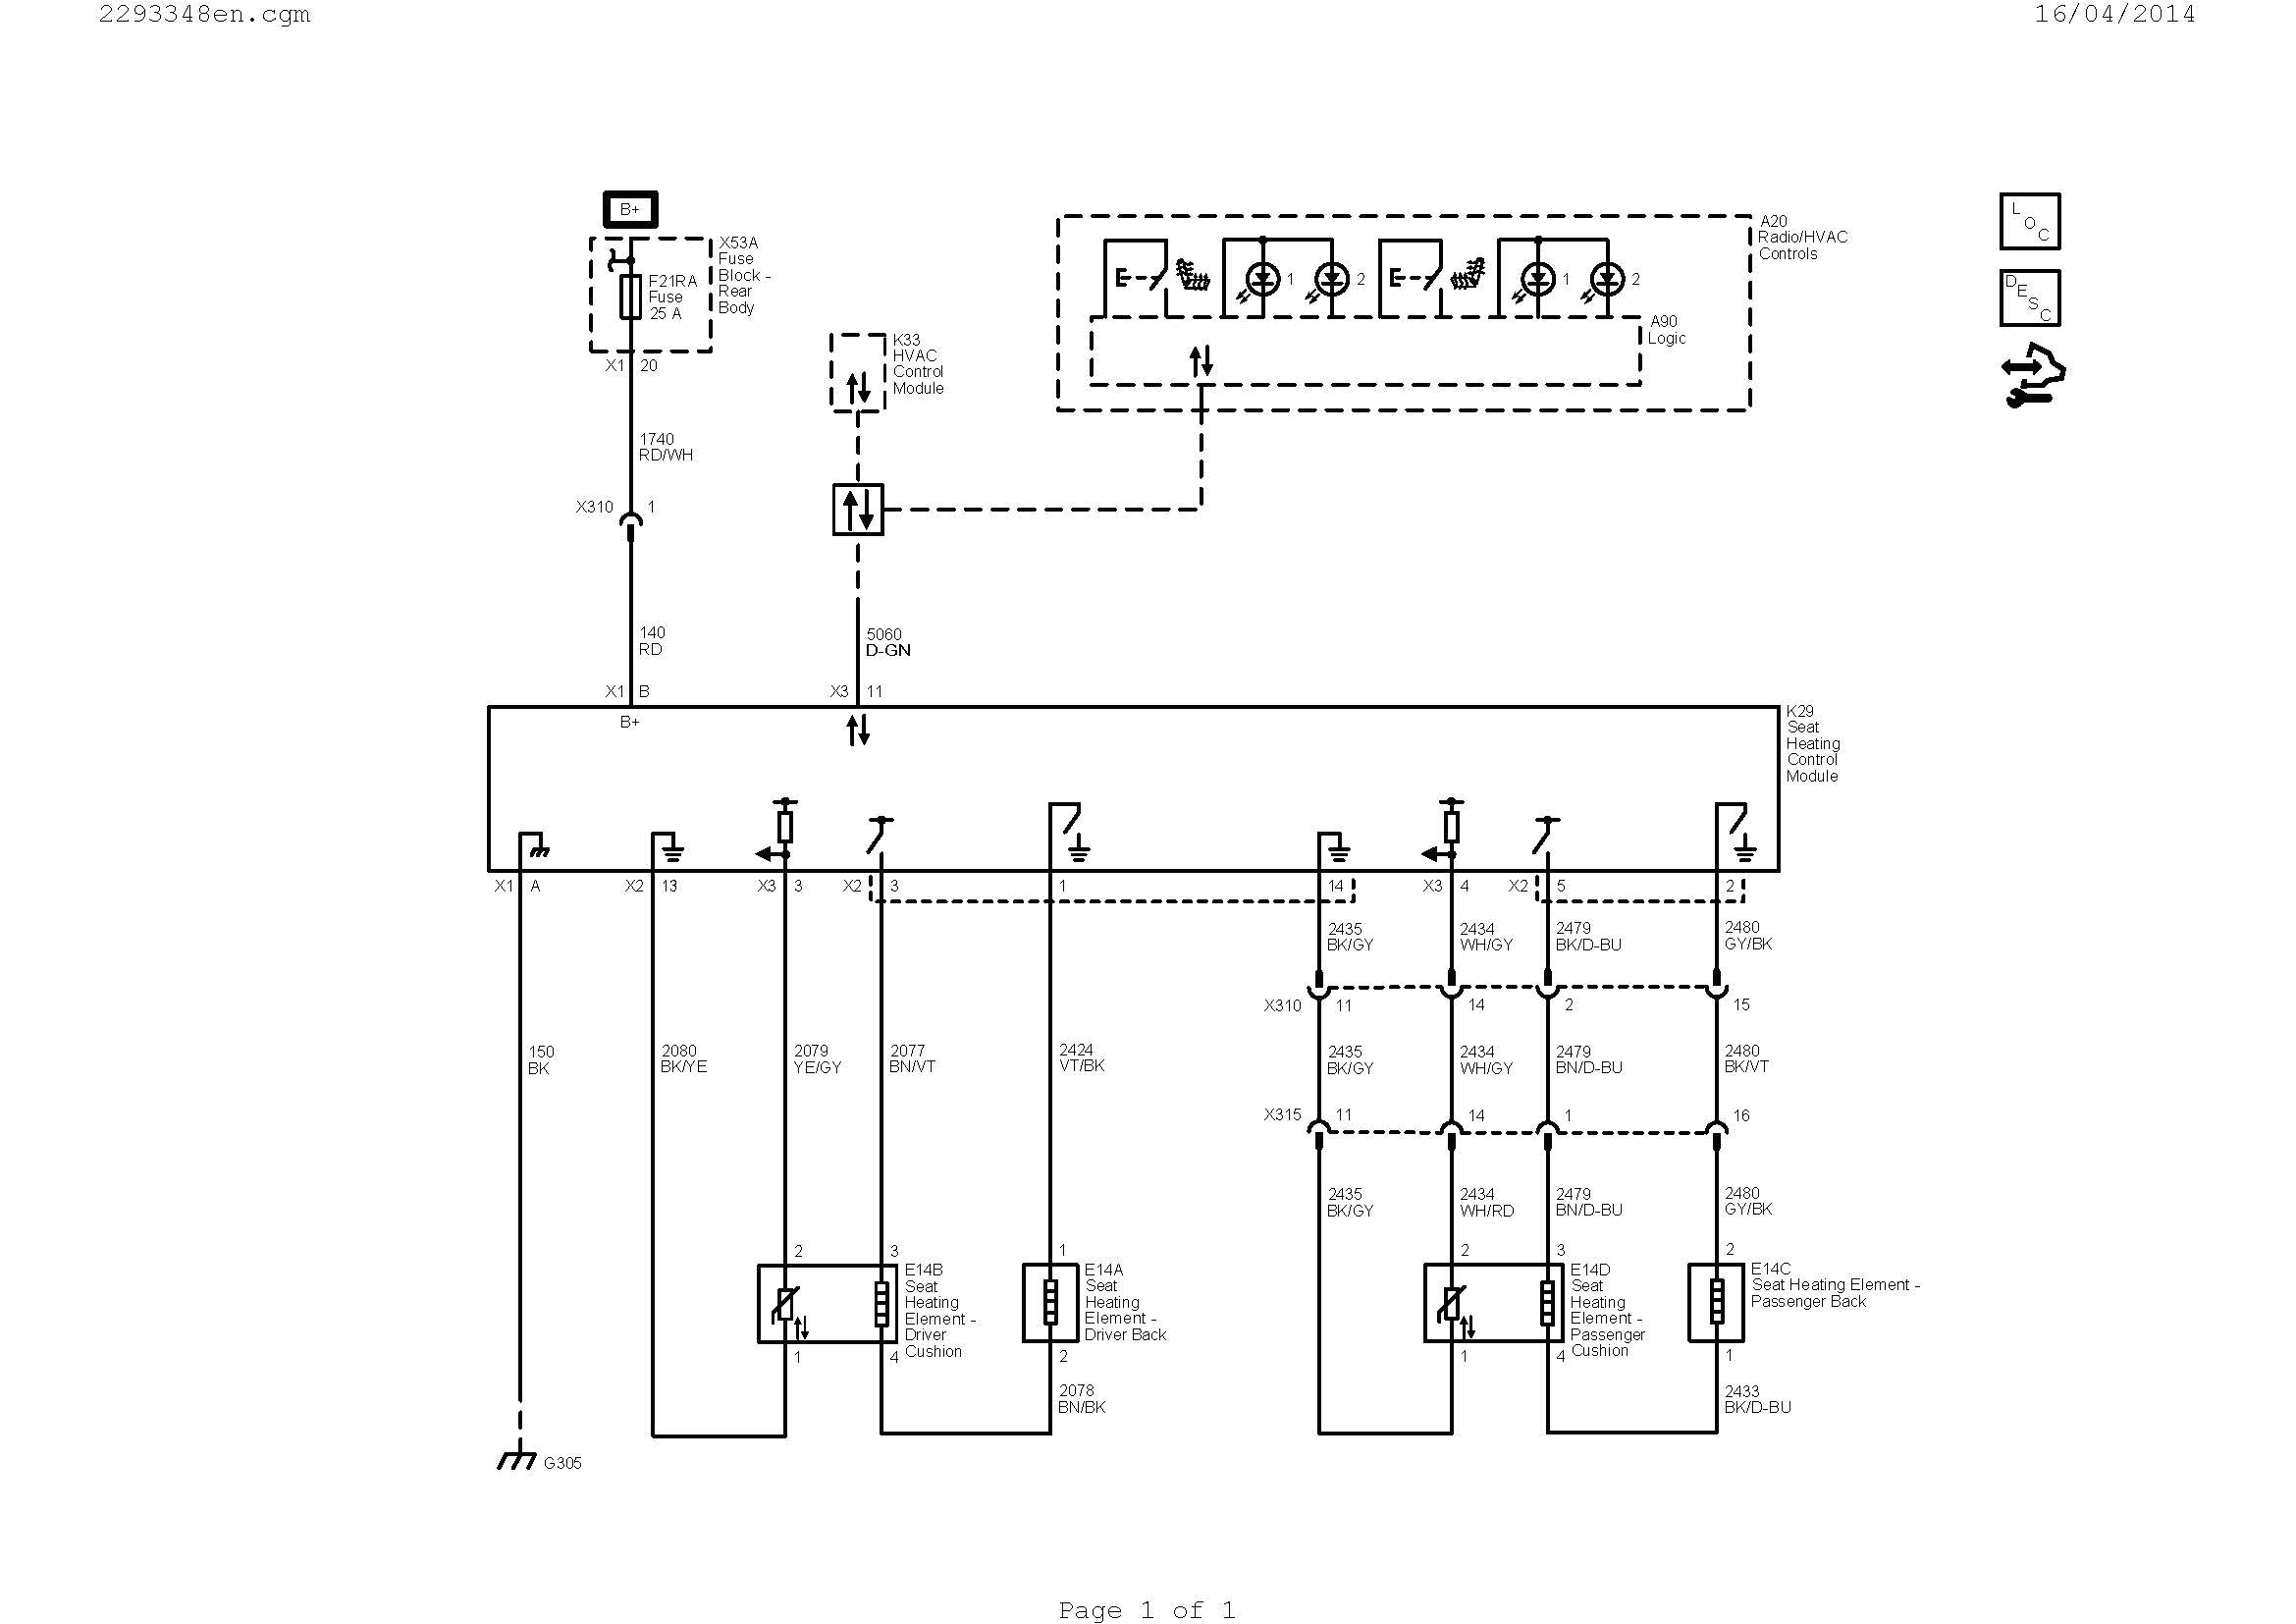 wiring diagram for capacitor beautiful capacitor wiring diagram hvac collection